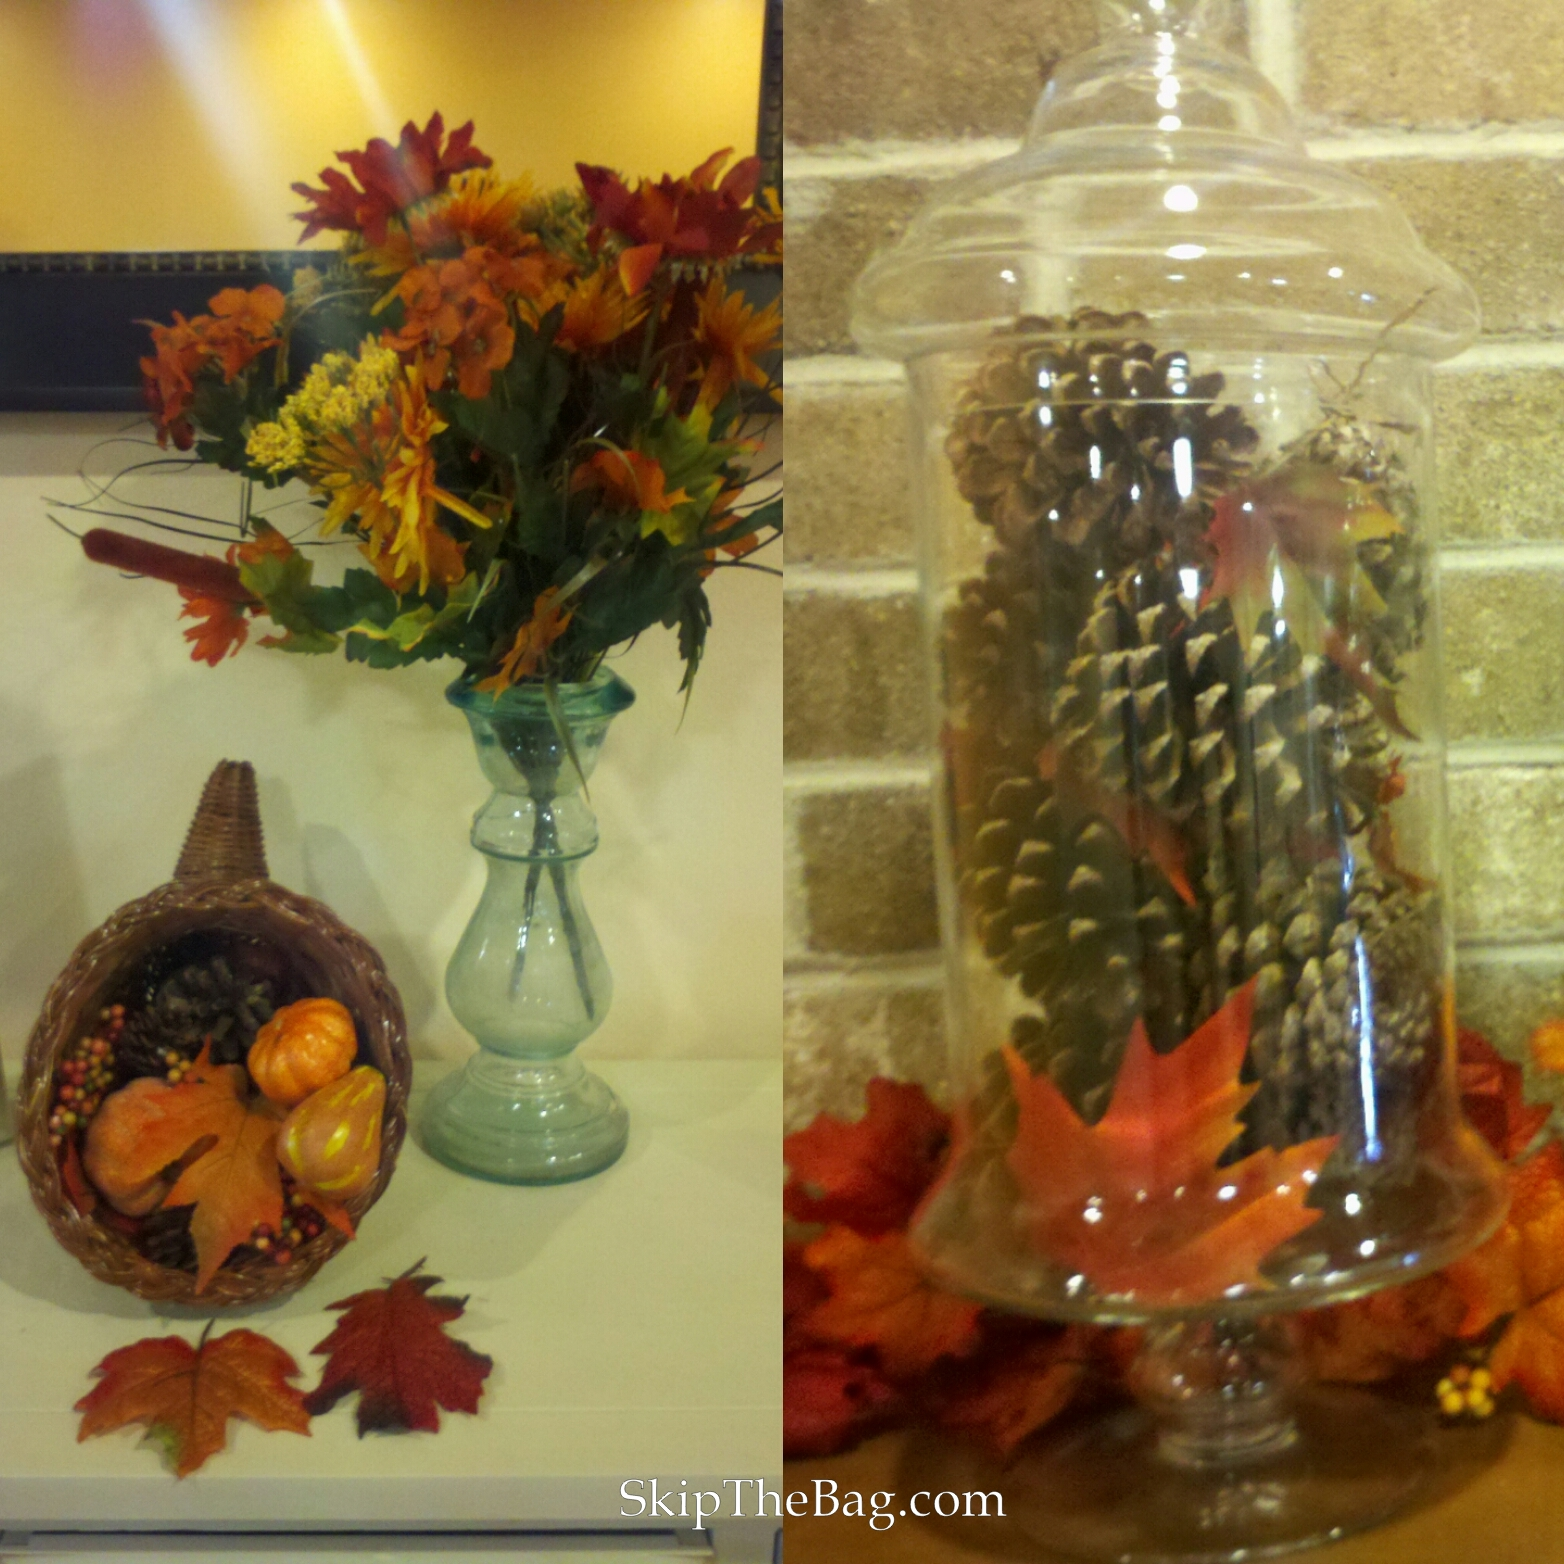 Skip the bag zero waste halloween ideas for Decoration with waste